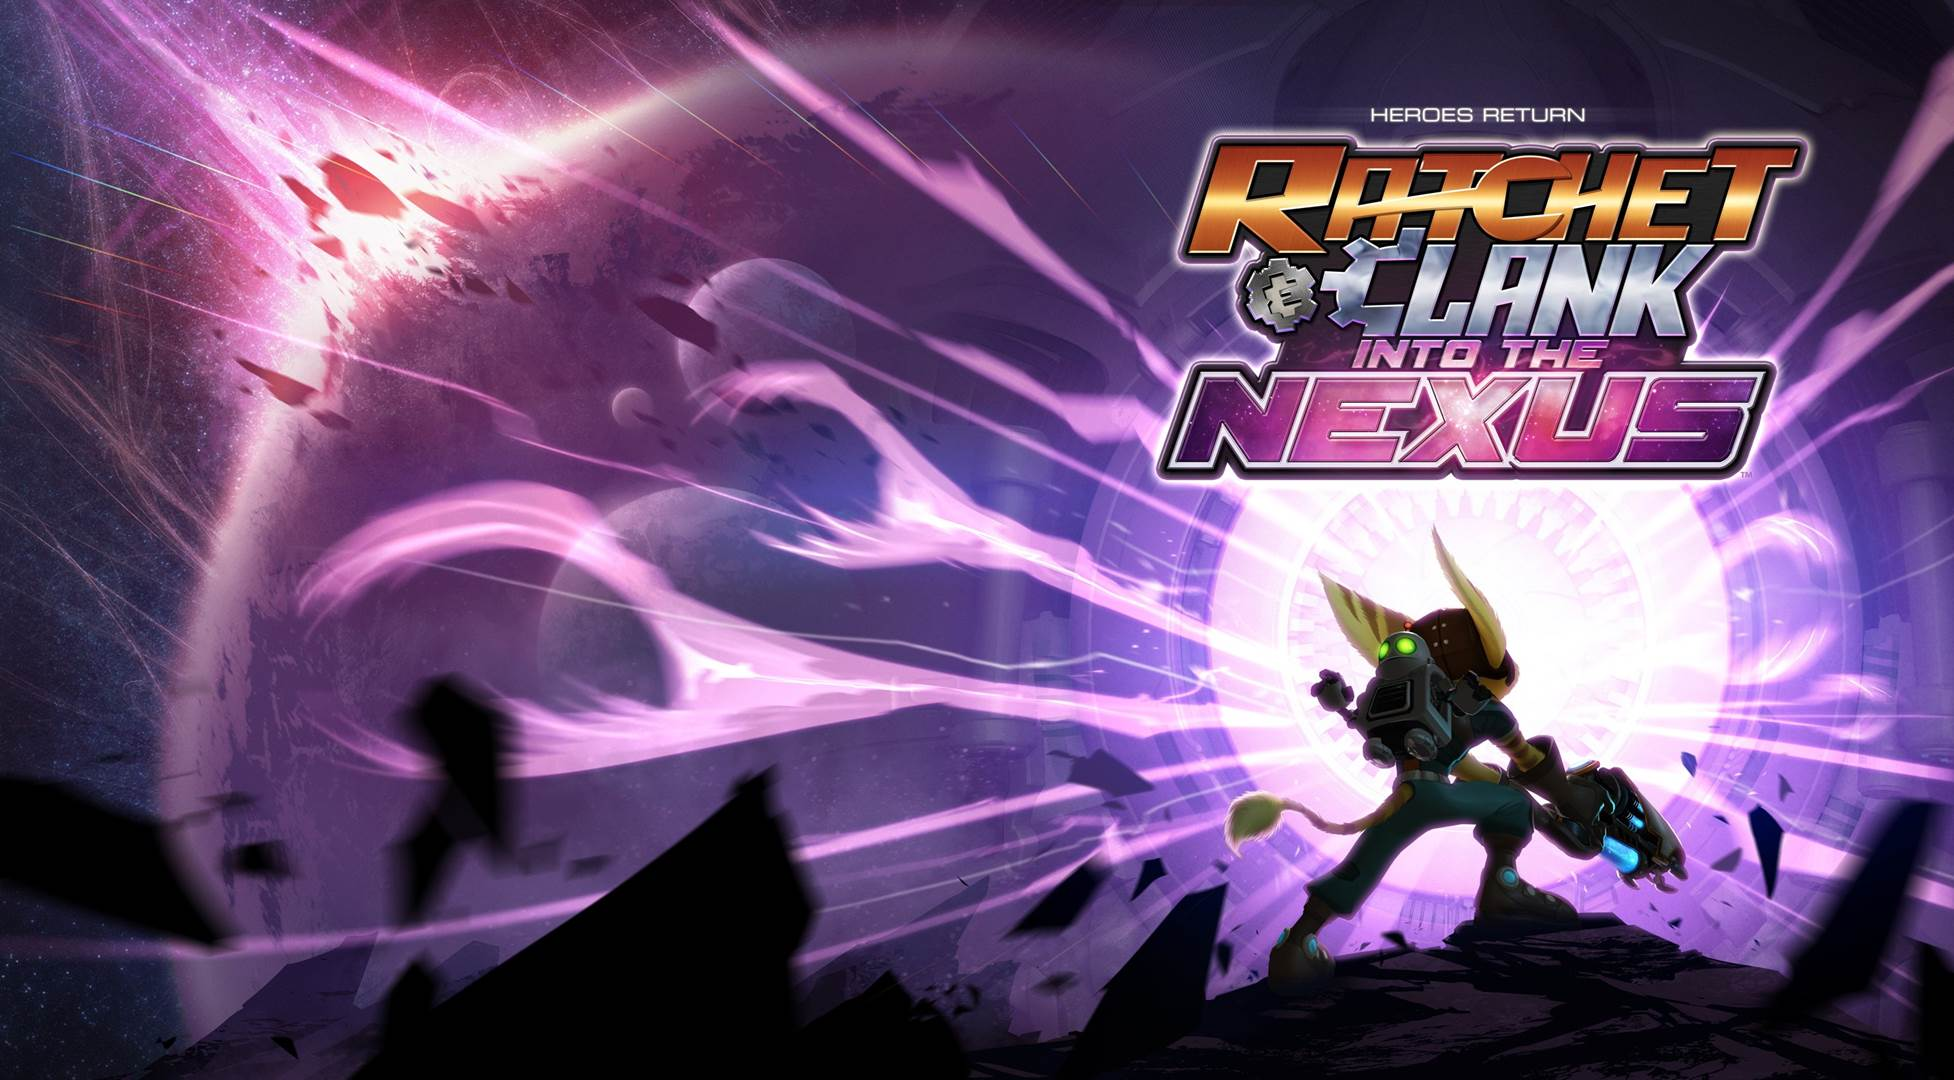 ratchet-and-clank-in-to-the-nexus-hd-wallpaper